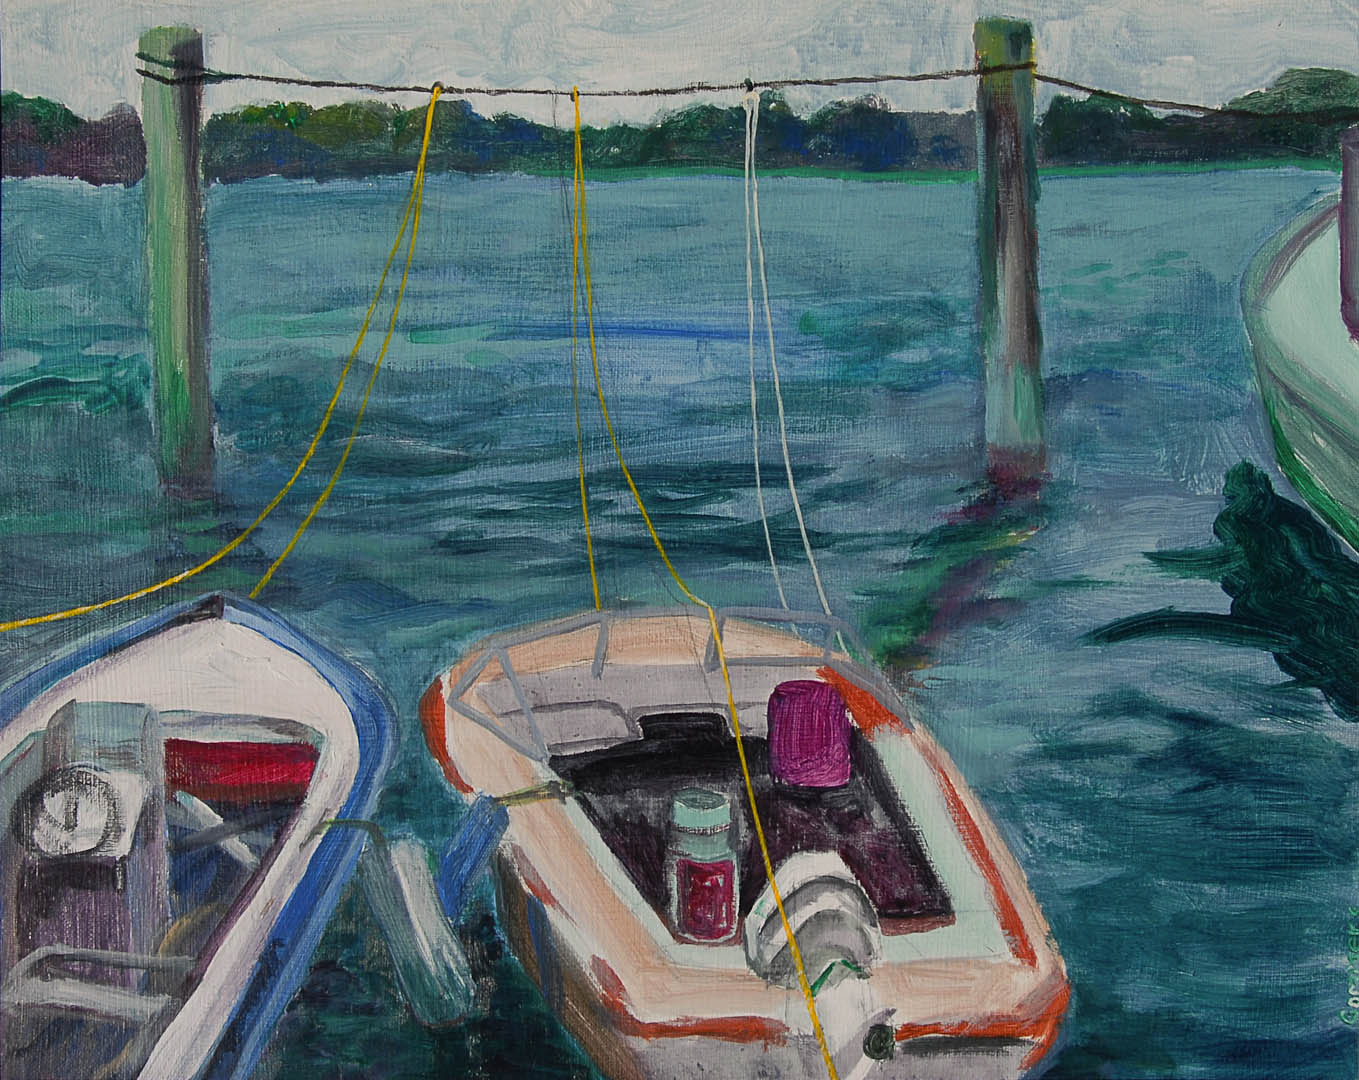 "10 Tethered in Bristol Harbor, Acrylic on canvas. 16 x 20"" $1600"